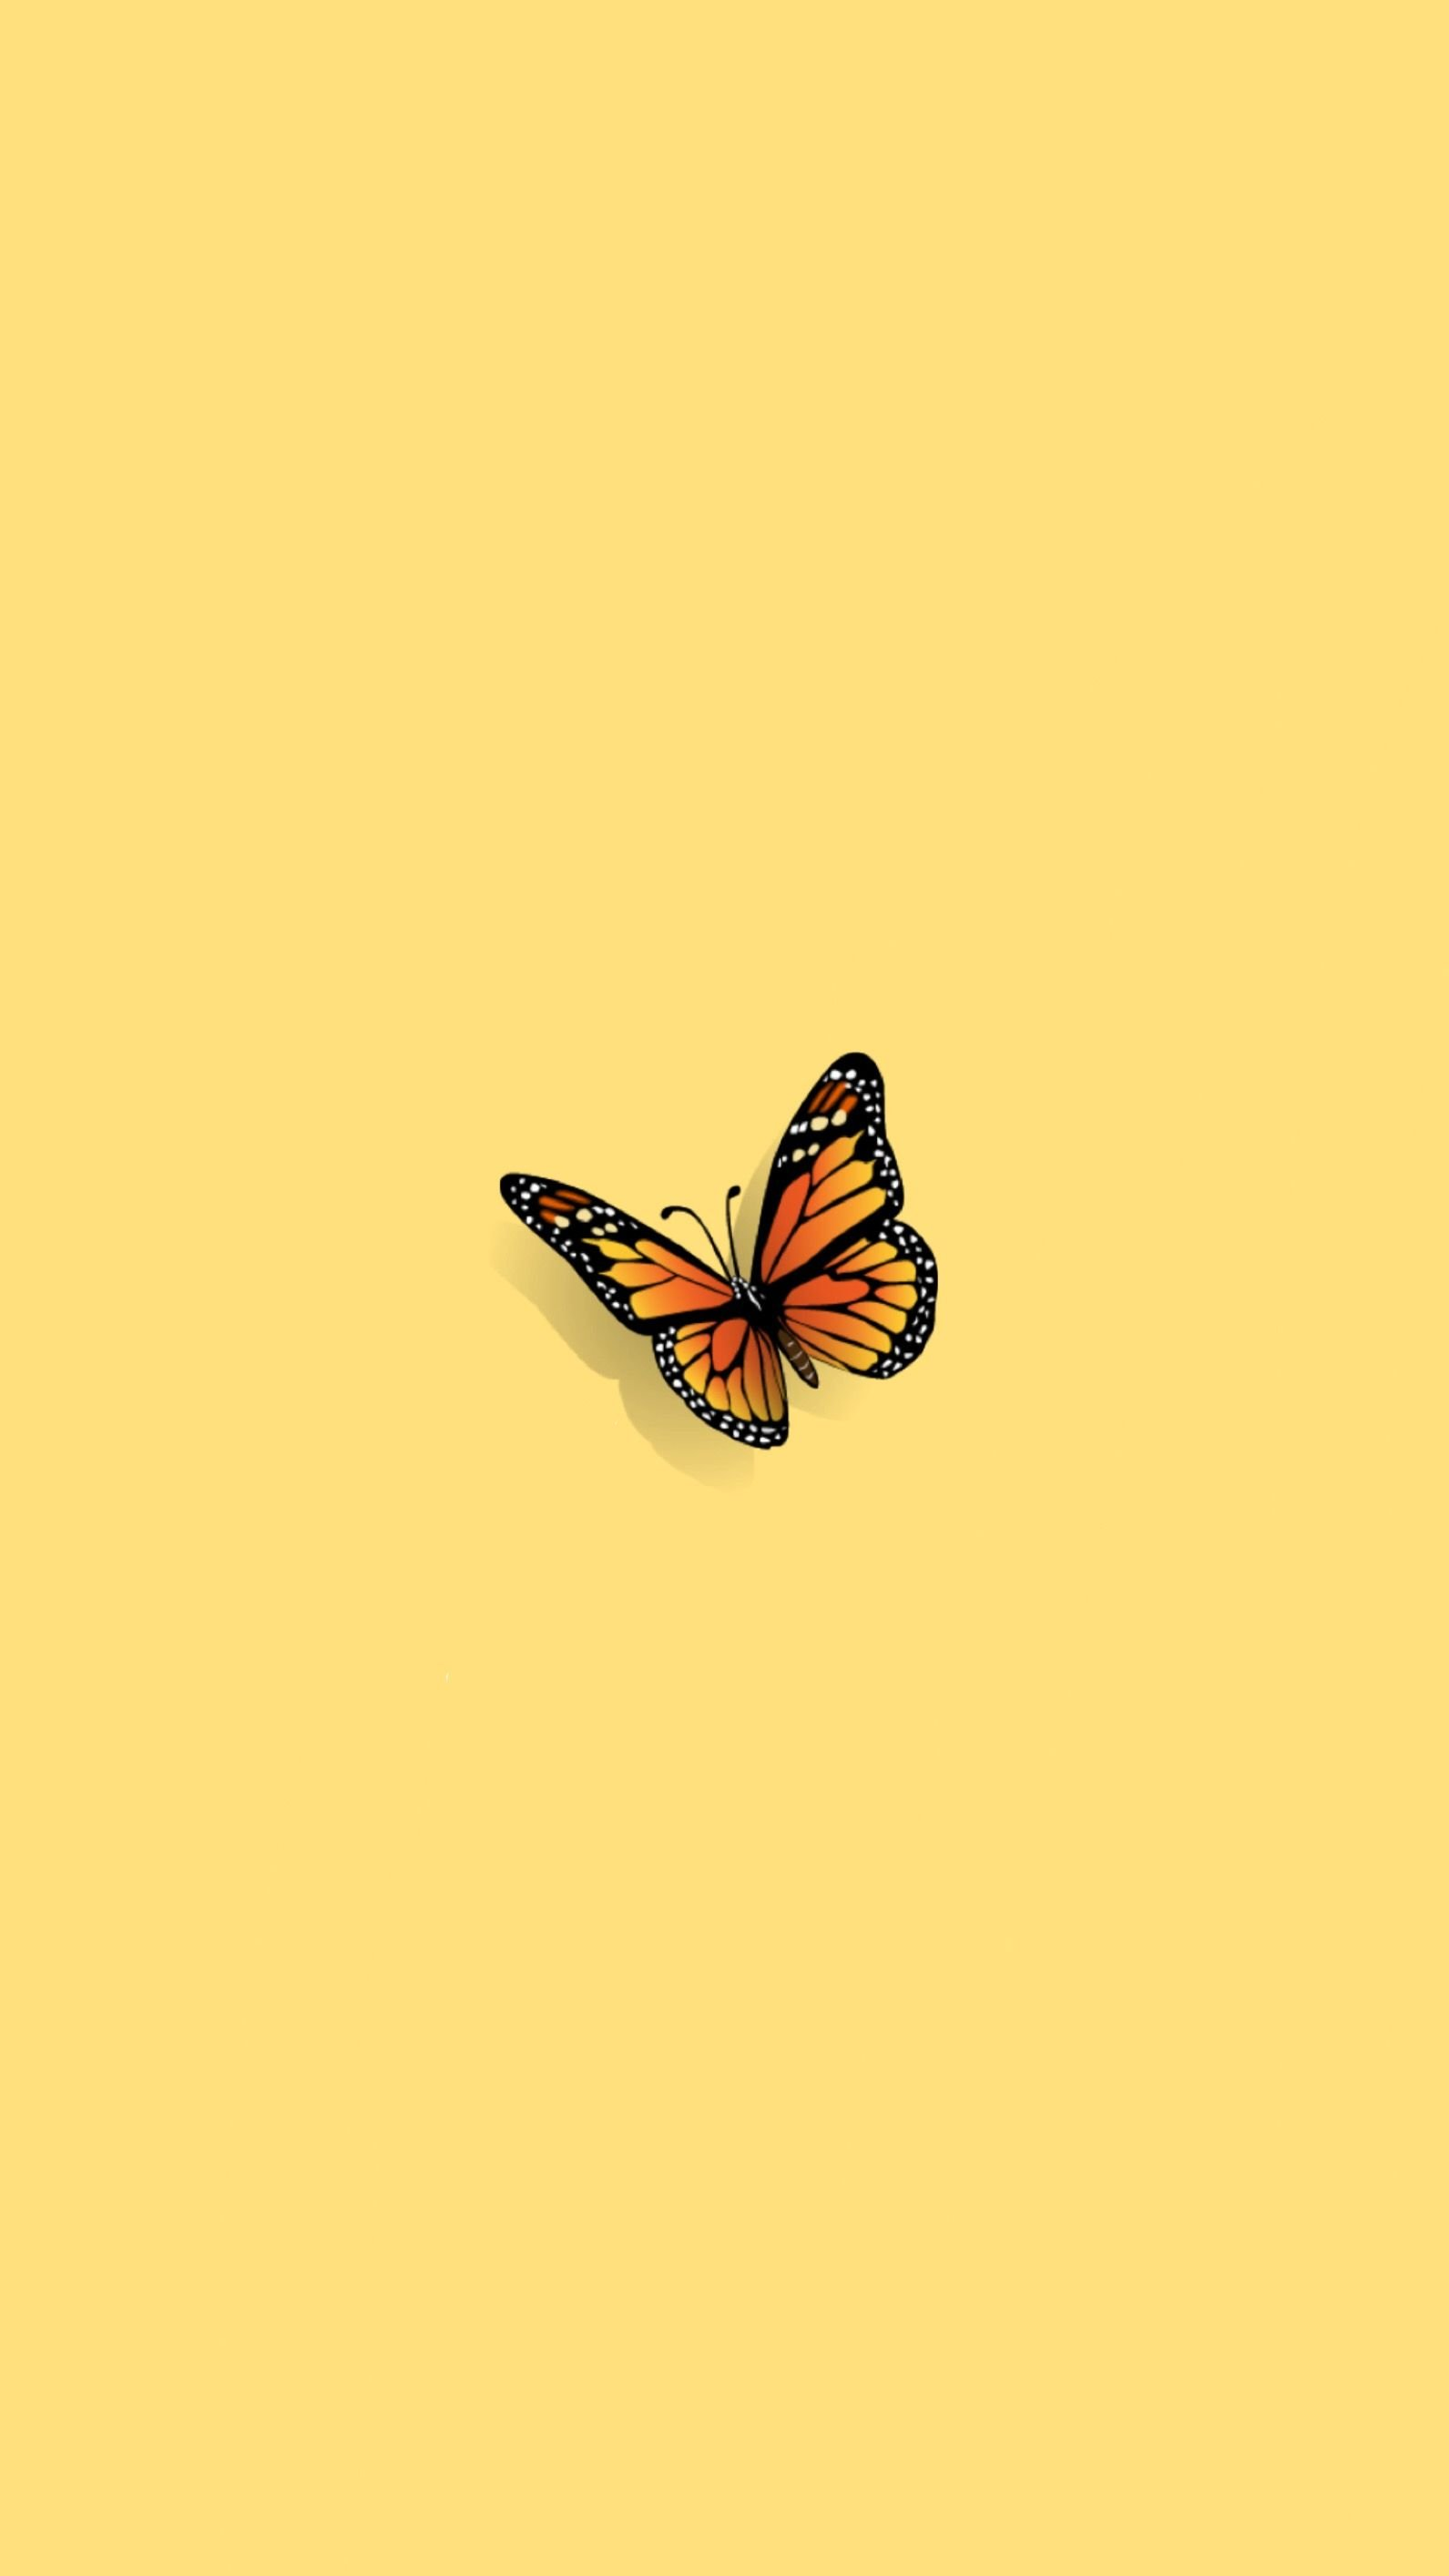 Aesthetic Tumblr Butterfly Yellow Wallpaper